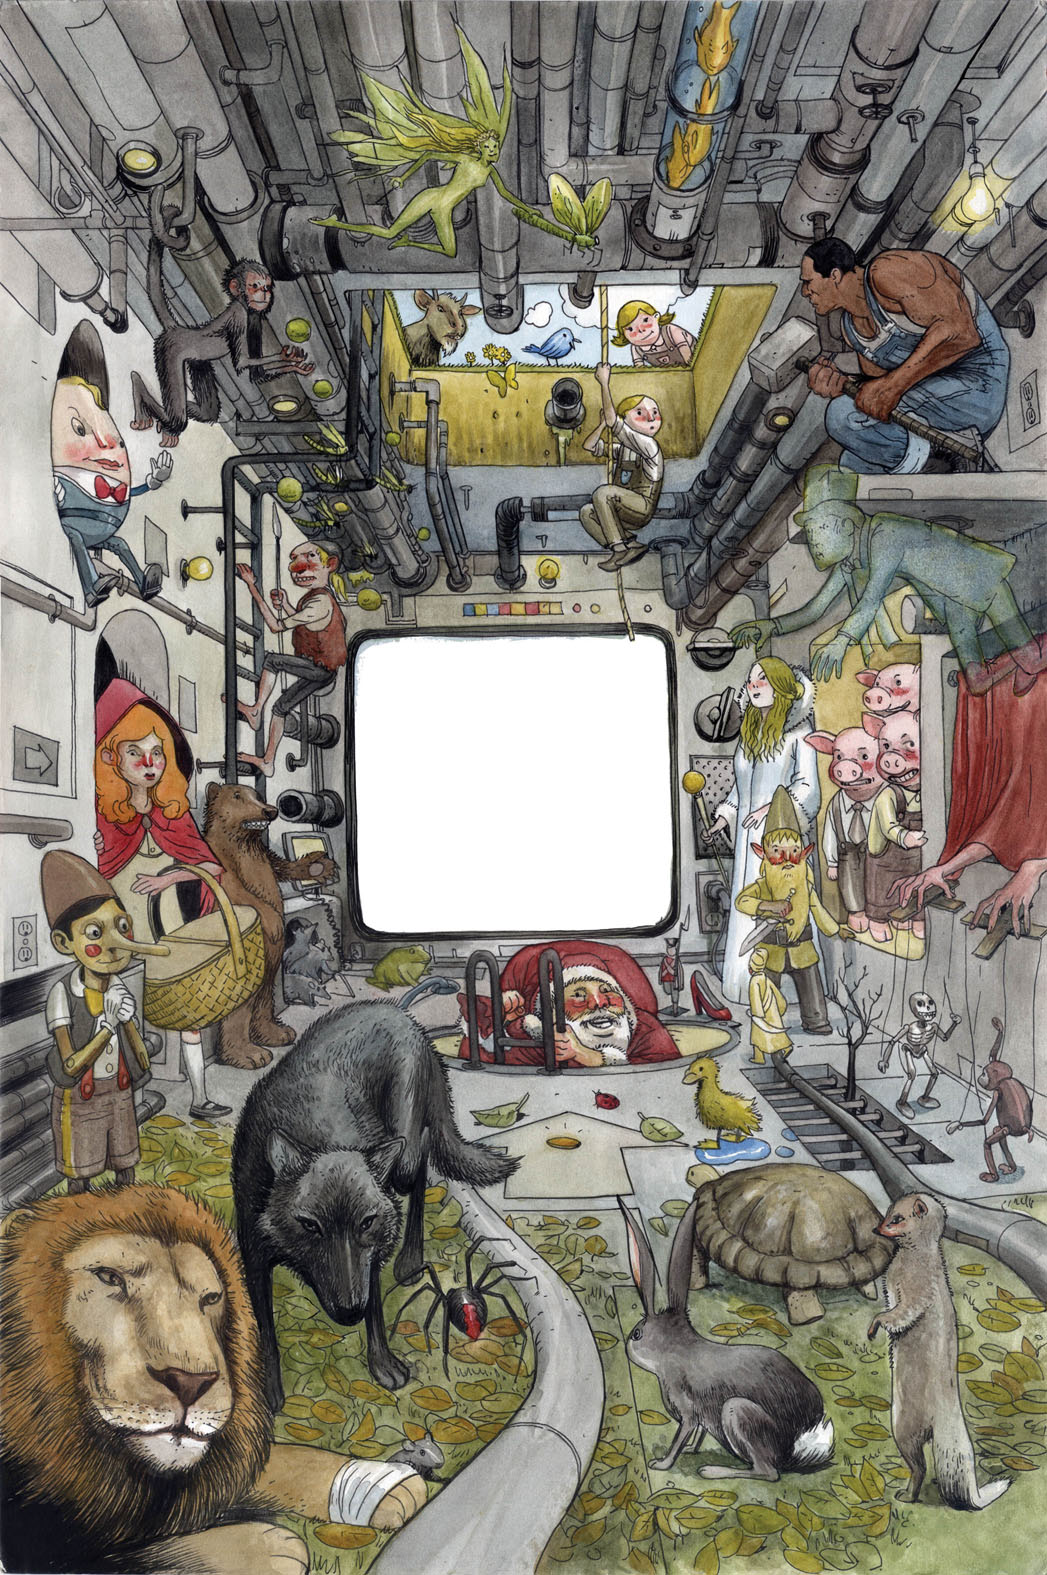 Title Page by Farel Dalrymple